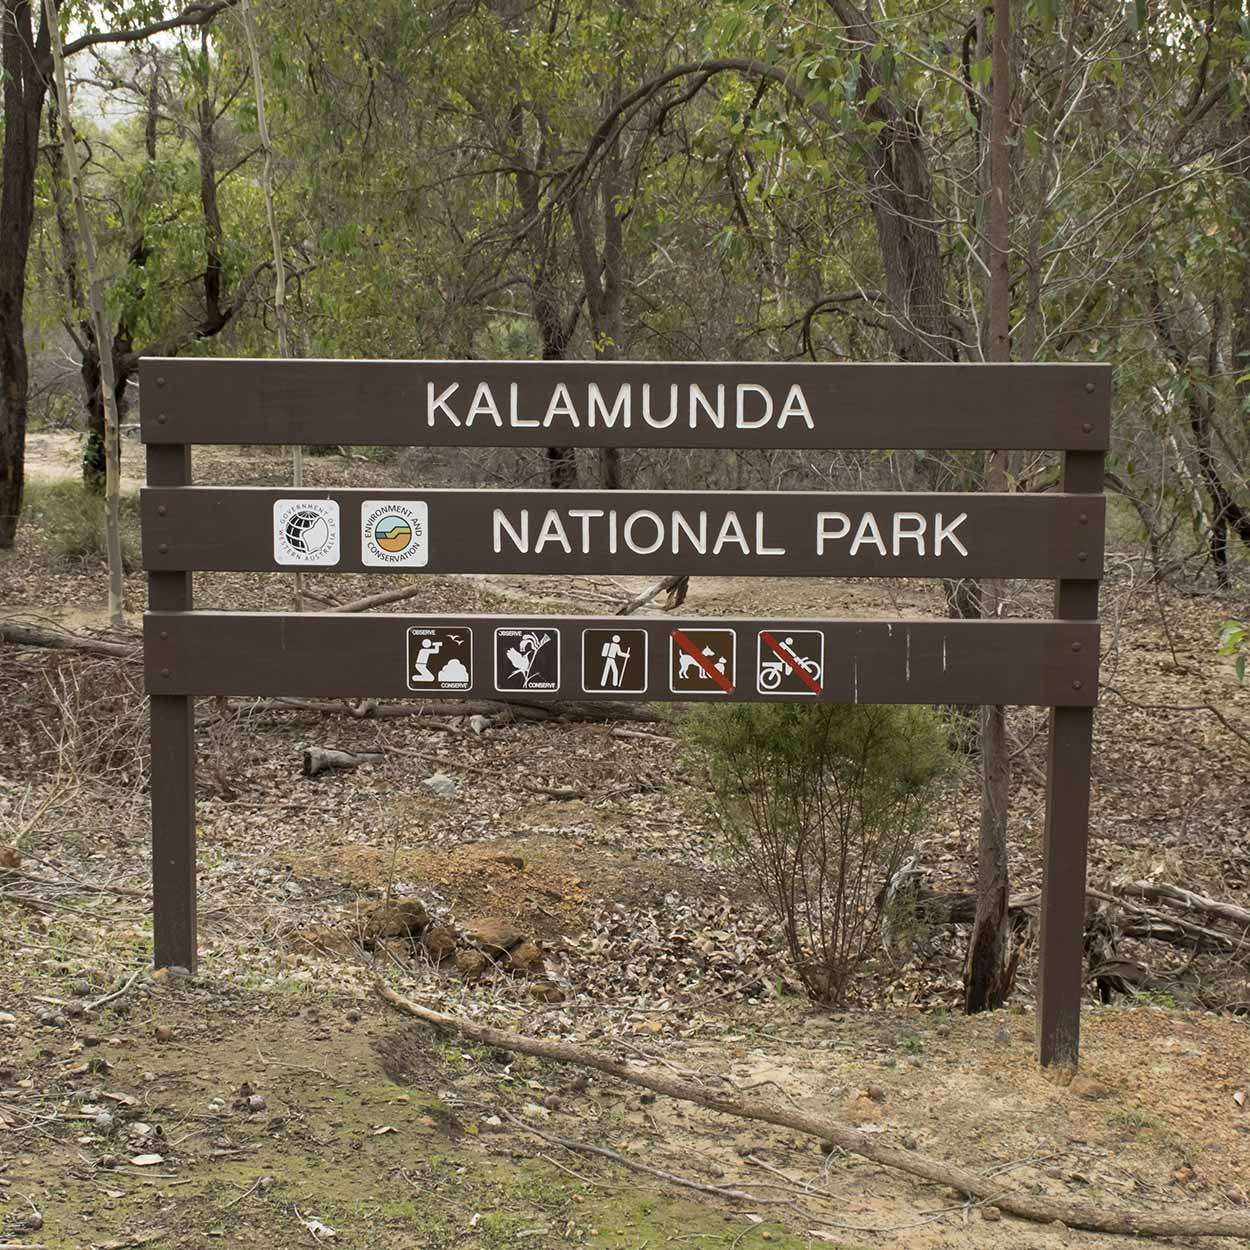 Start of the Rocky Pool walk in the Kalamunda National Park, Perth, Western Australia